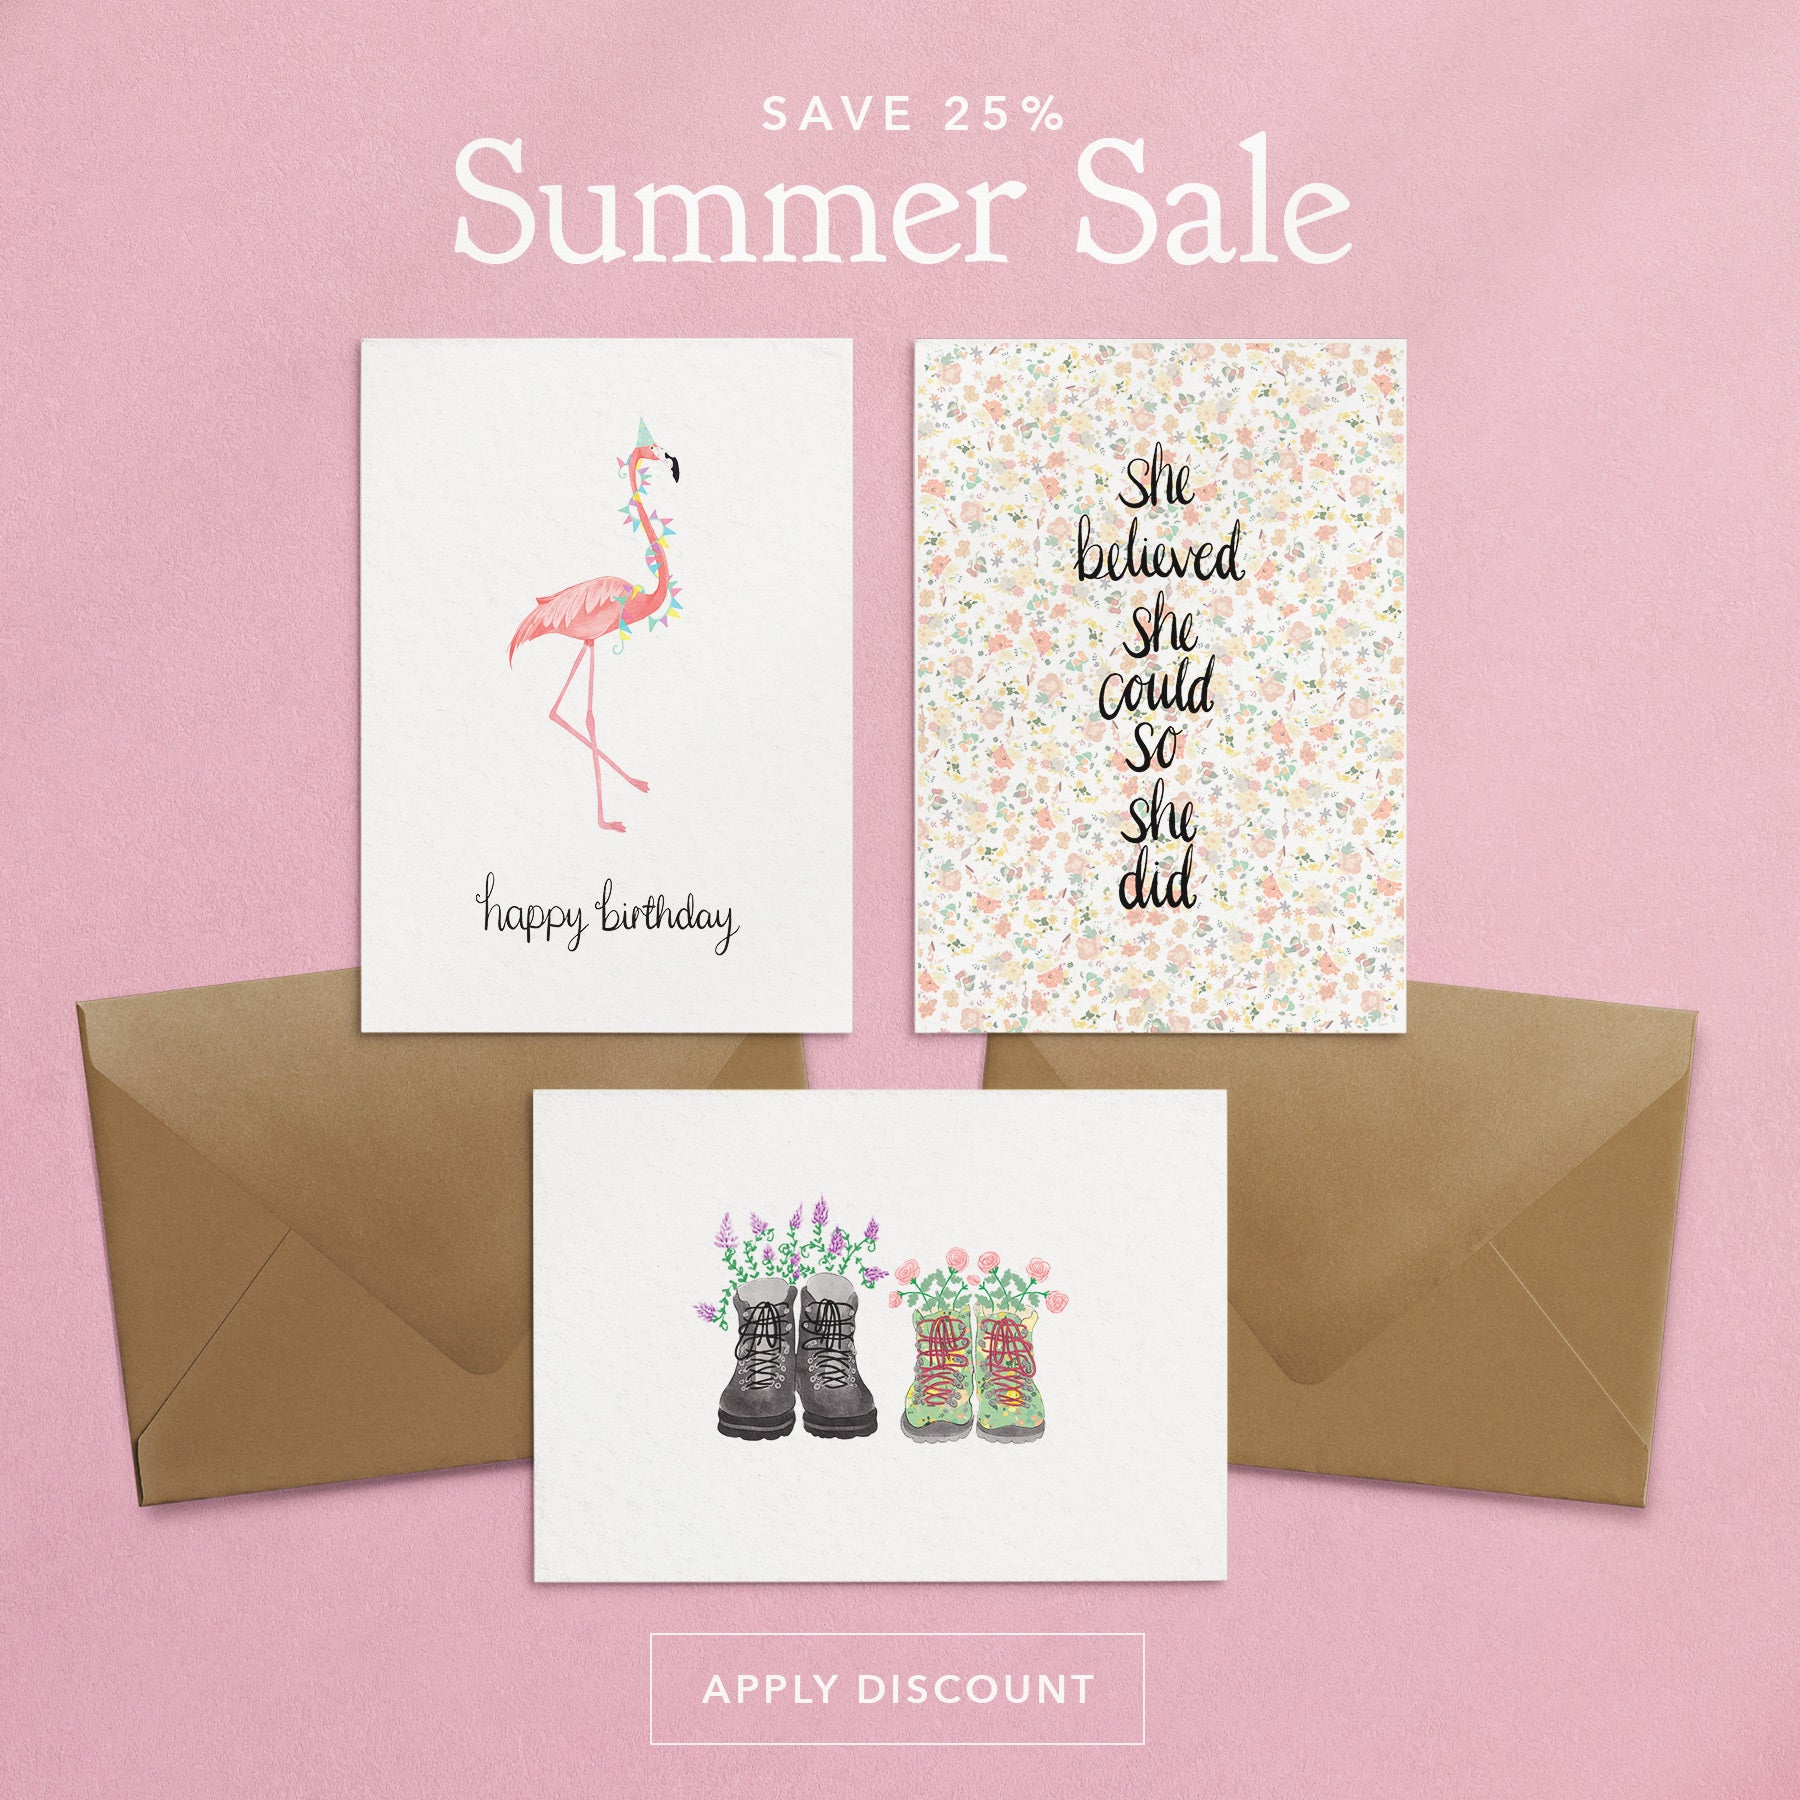 Summer Sale at Poppins & Co.